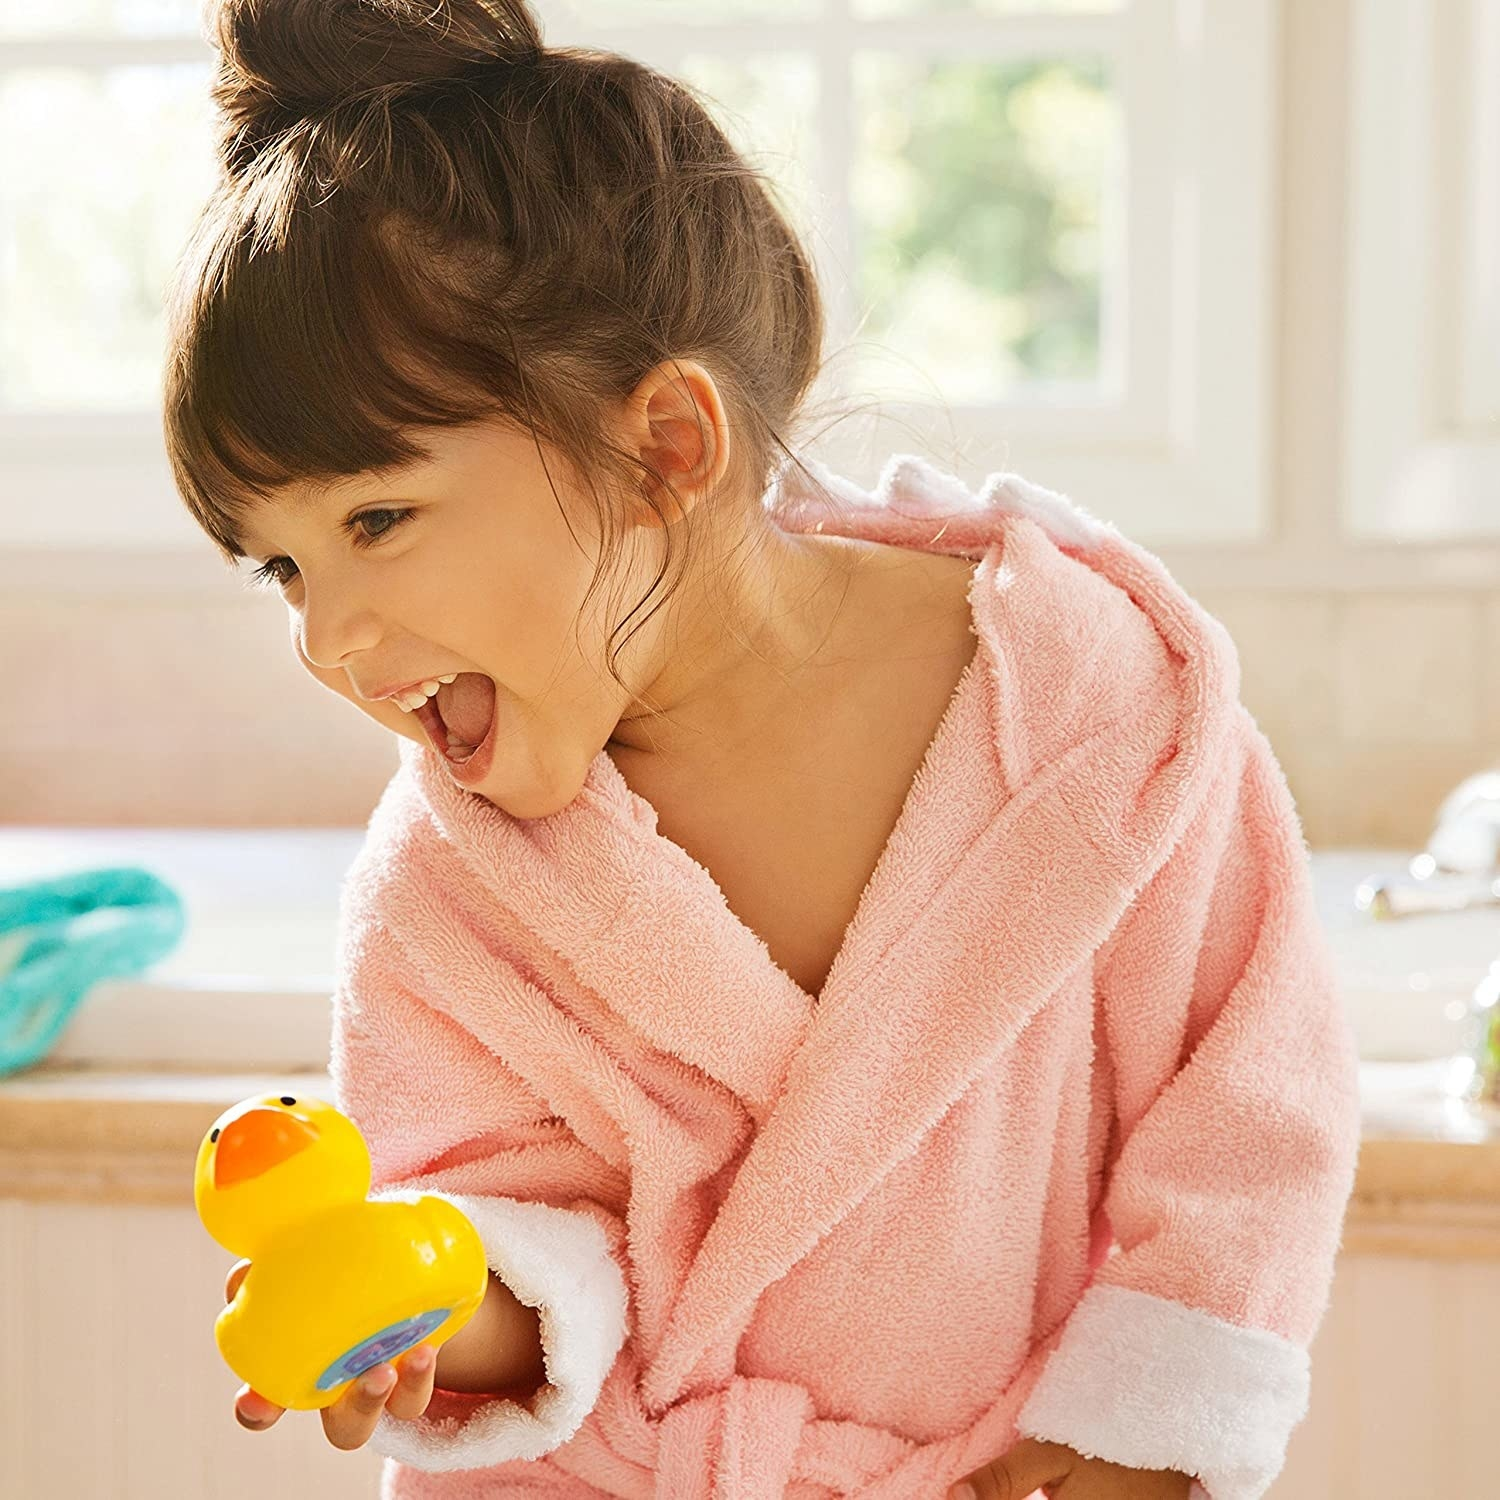 A small child holding a rubber duck toy